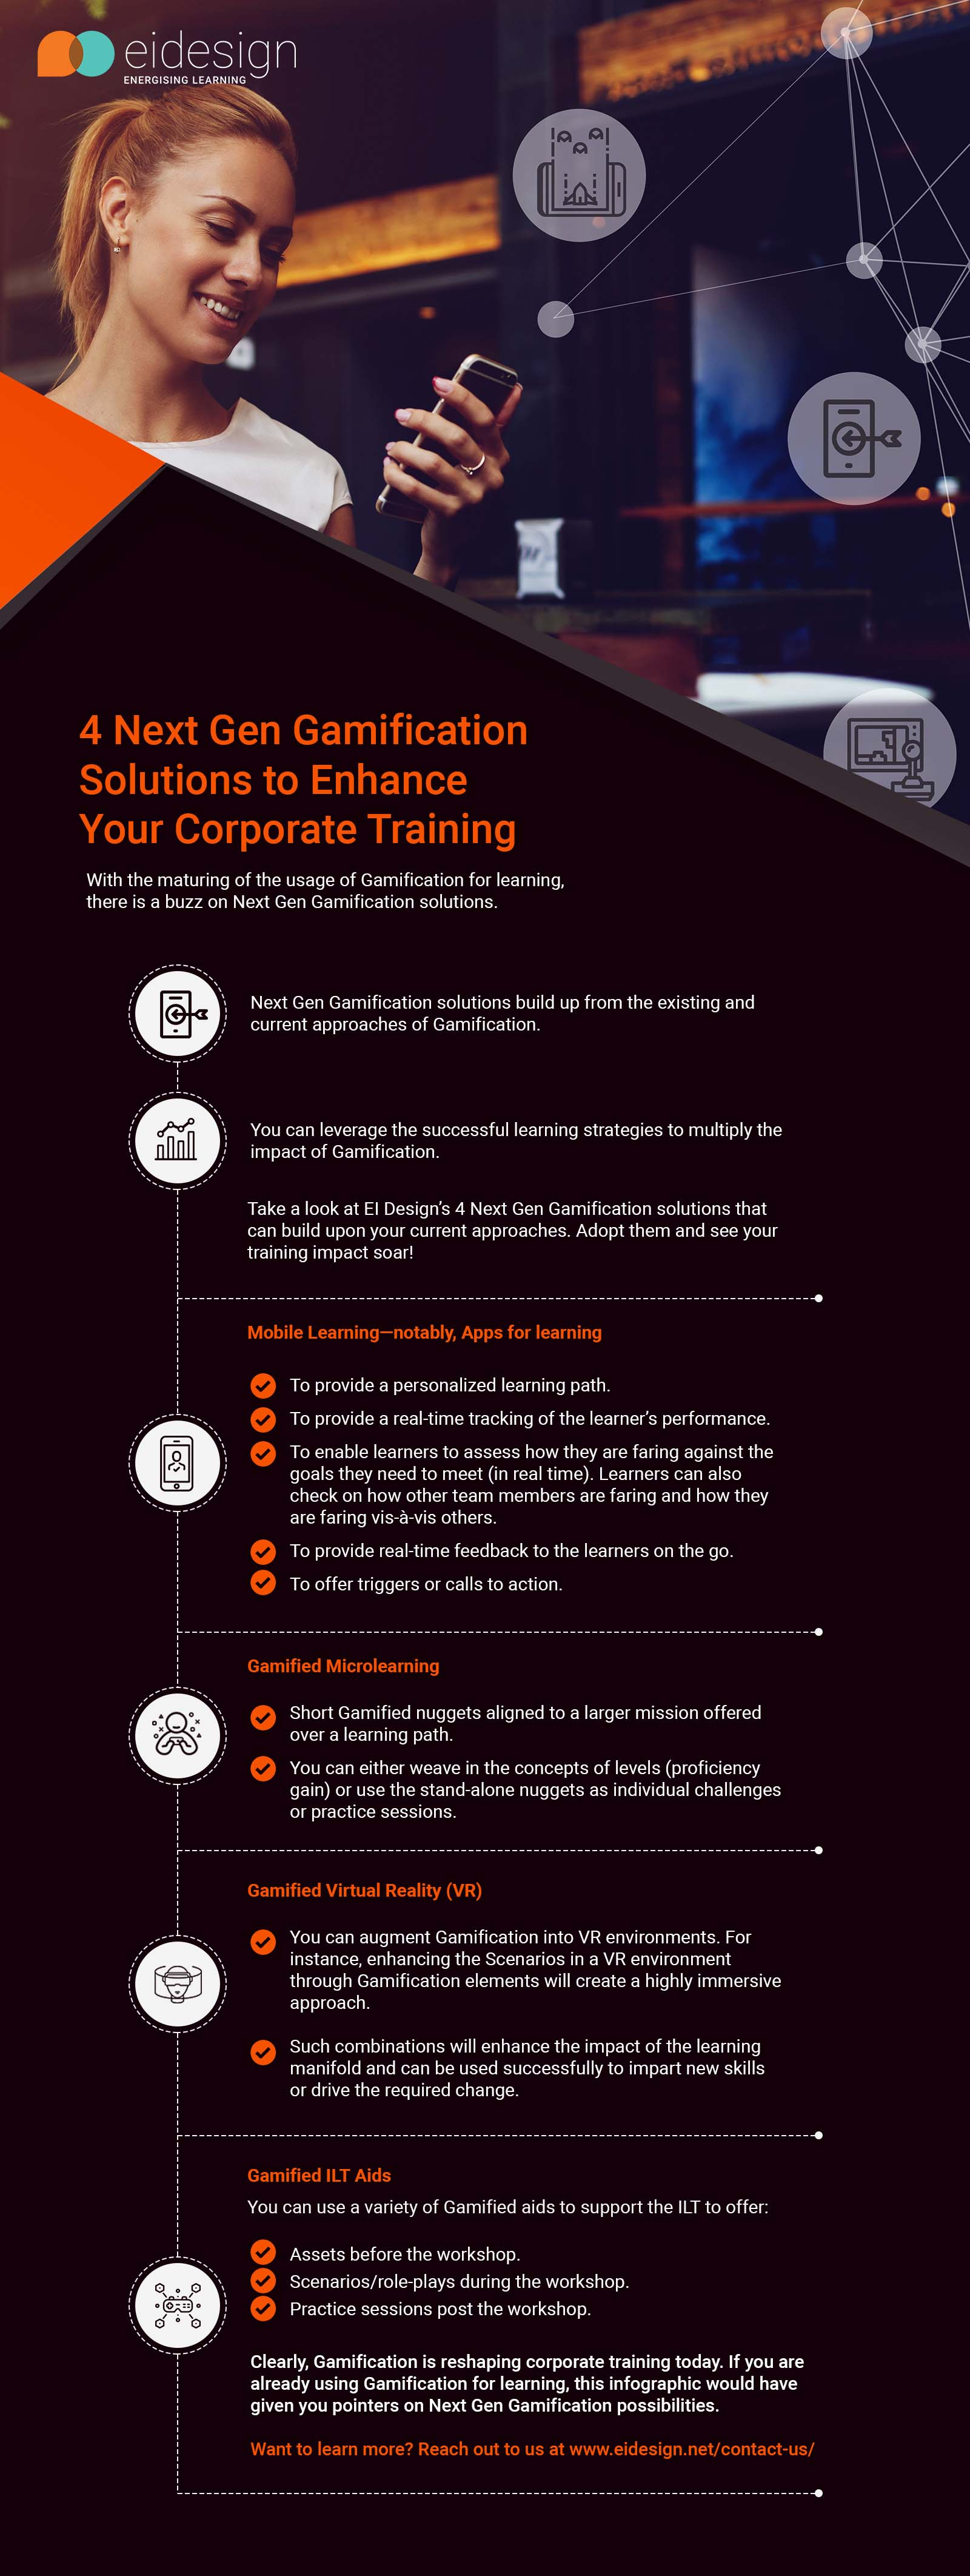 4 Next Gen Gamification Solutions to Enhance Your Corporate Training